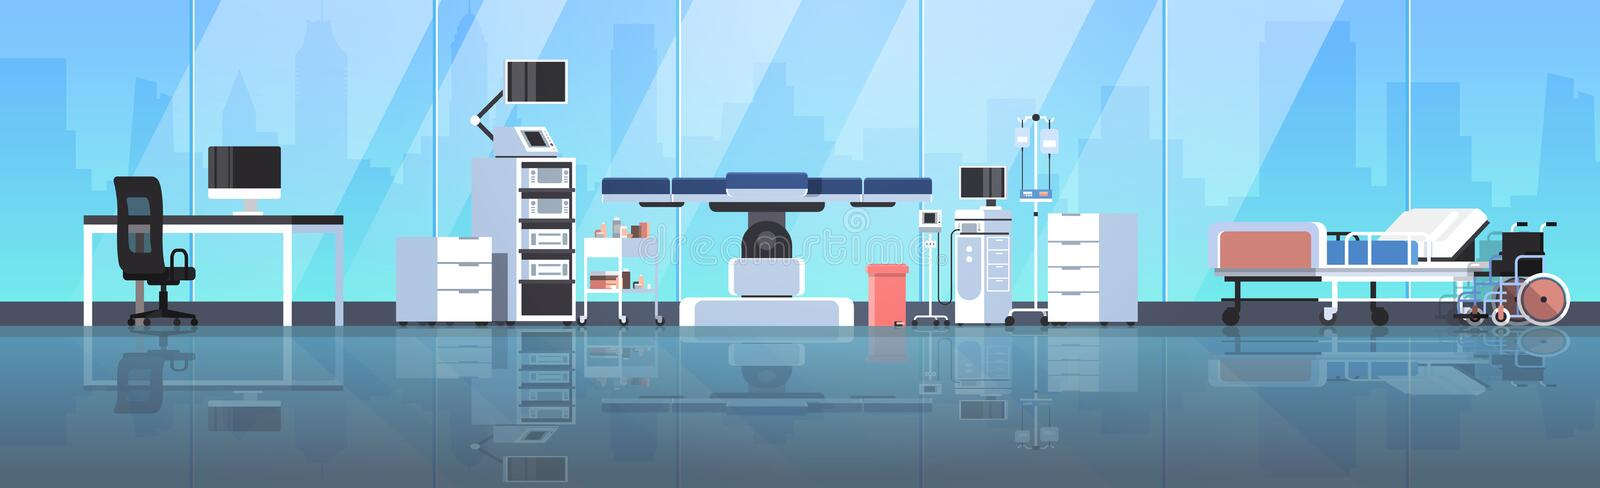 Hospital operating table clean medical surgery room modern equipment clinic interior medical worker doctor workplace. Glass wall cityscape background horizontal vector illustration